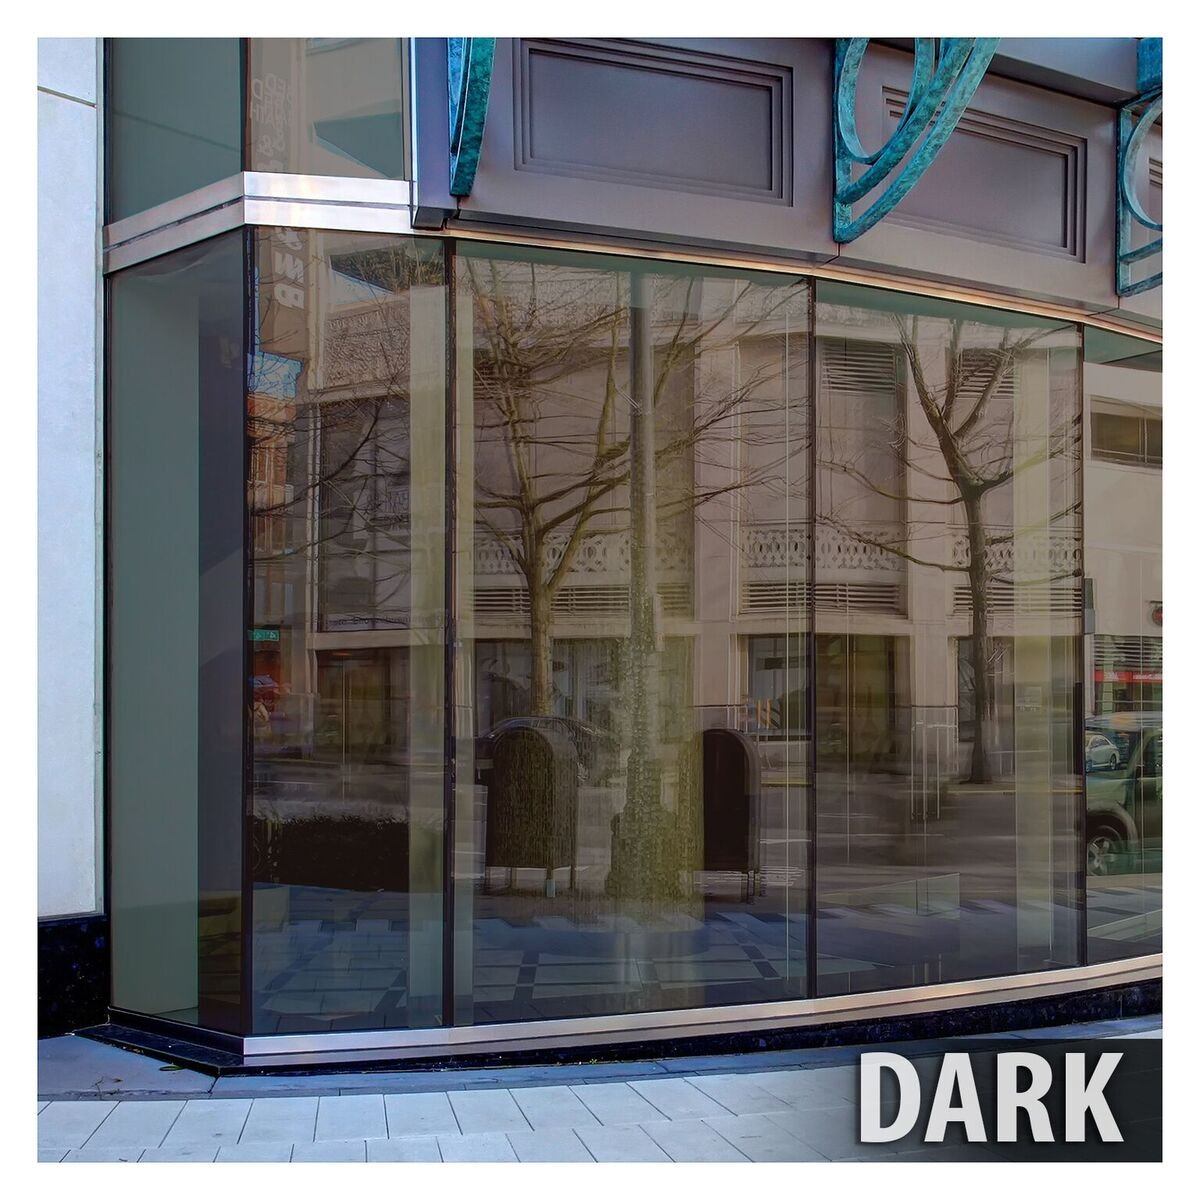 BDF BRZ20 Window Film Bronze Reflective Sun Control and Privacy (Dark) - 48in X 24ft by Buydecorativefilm